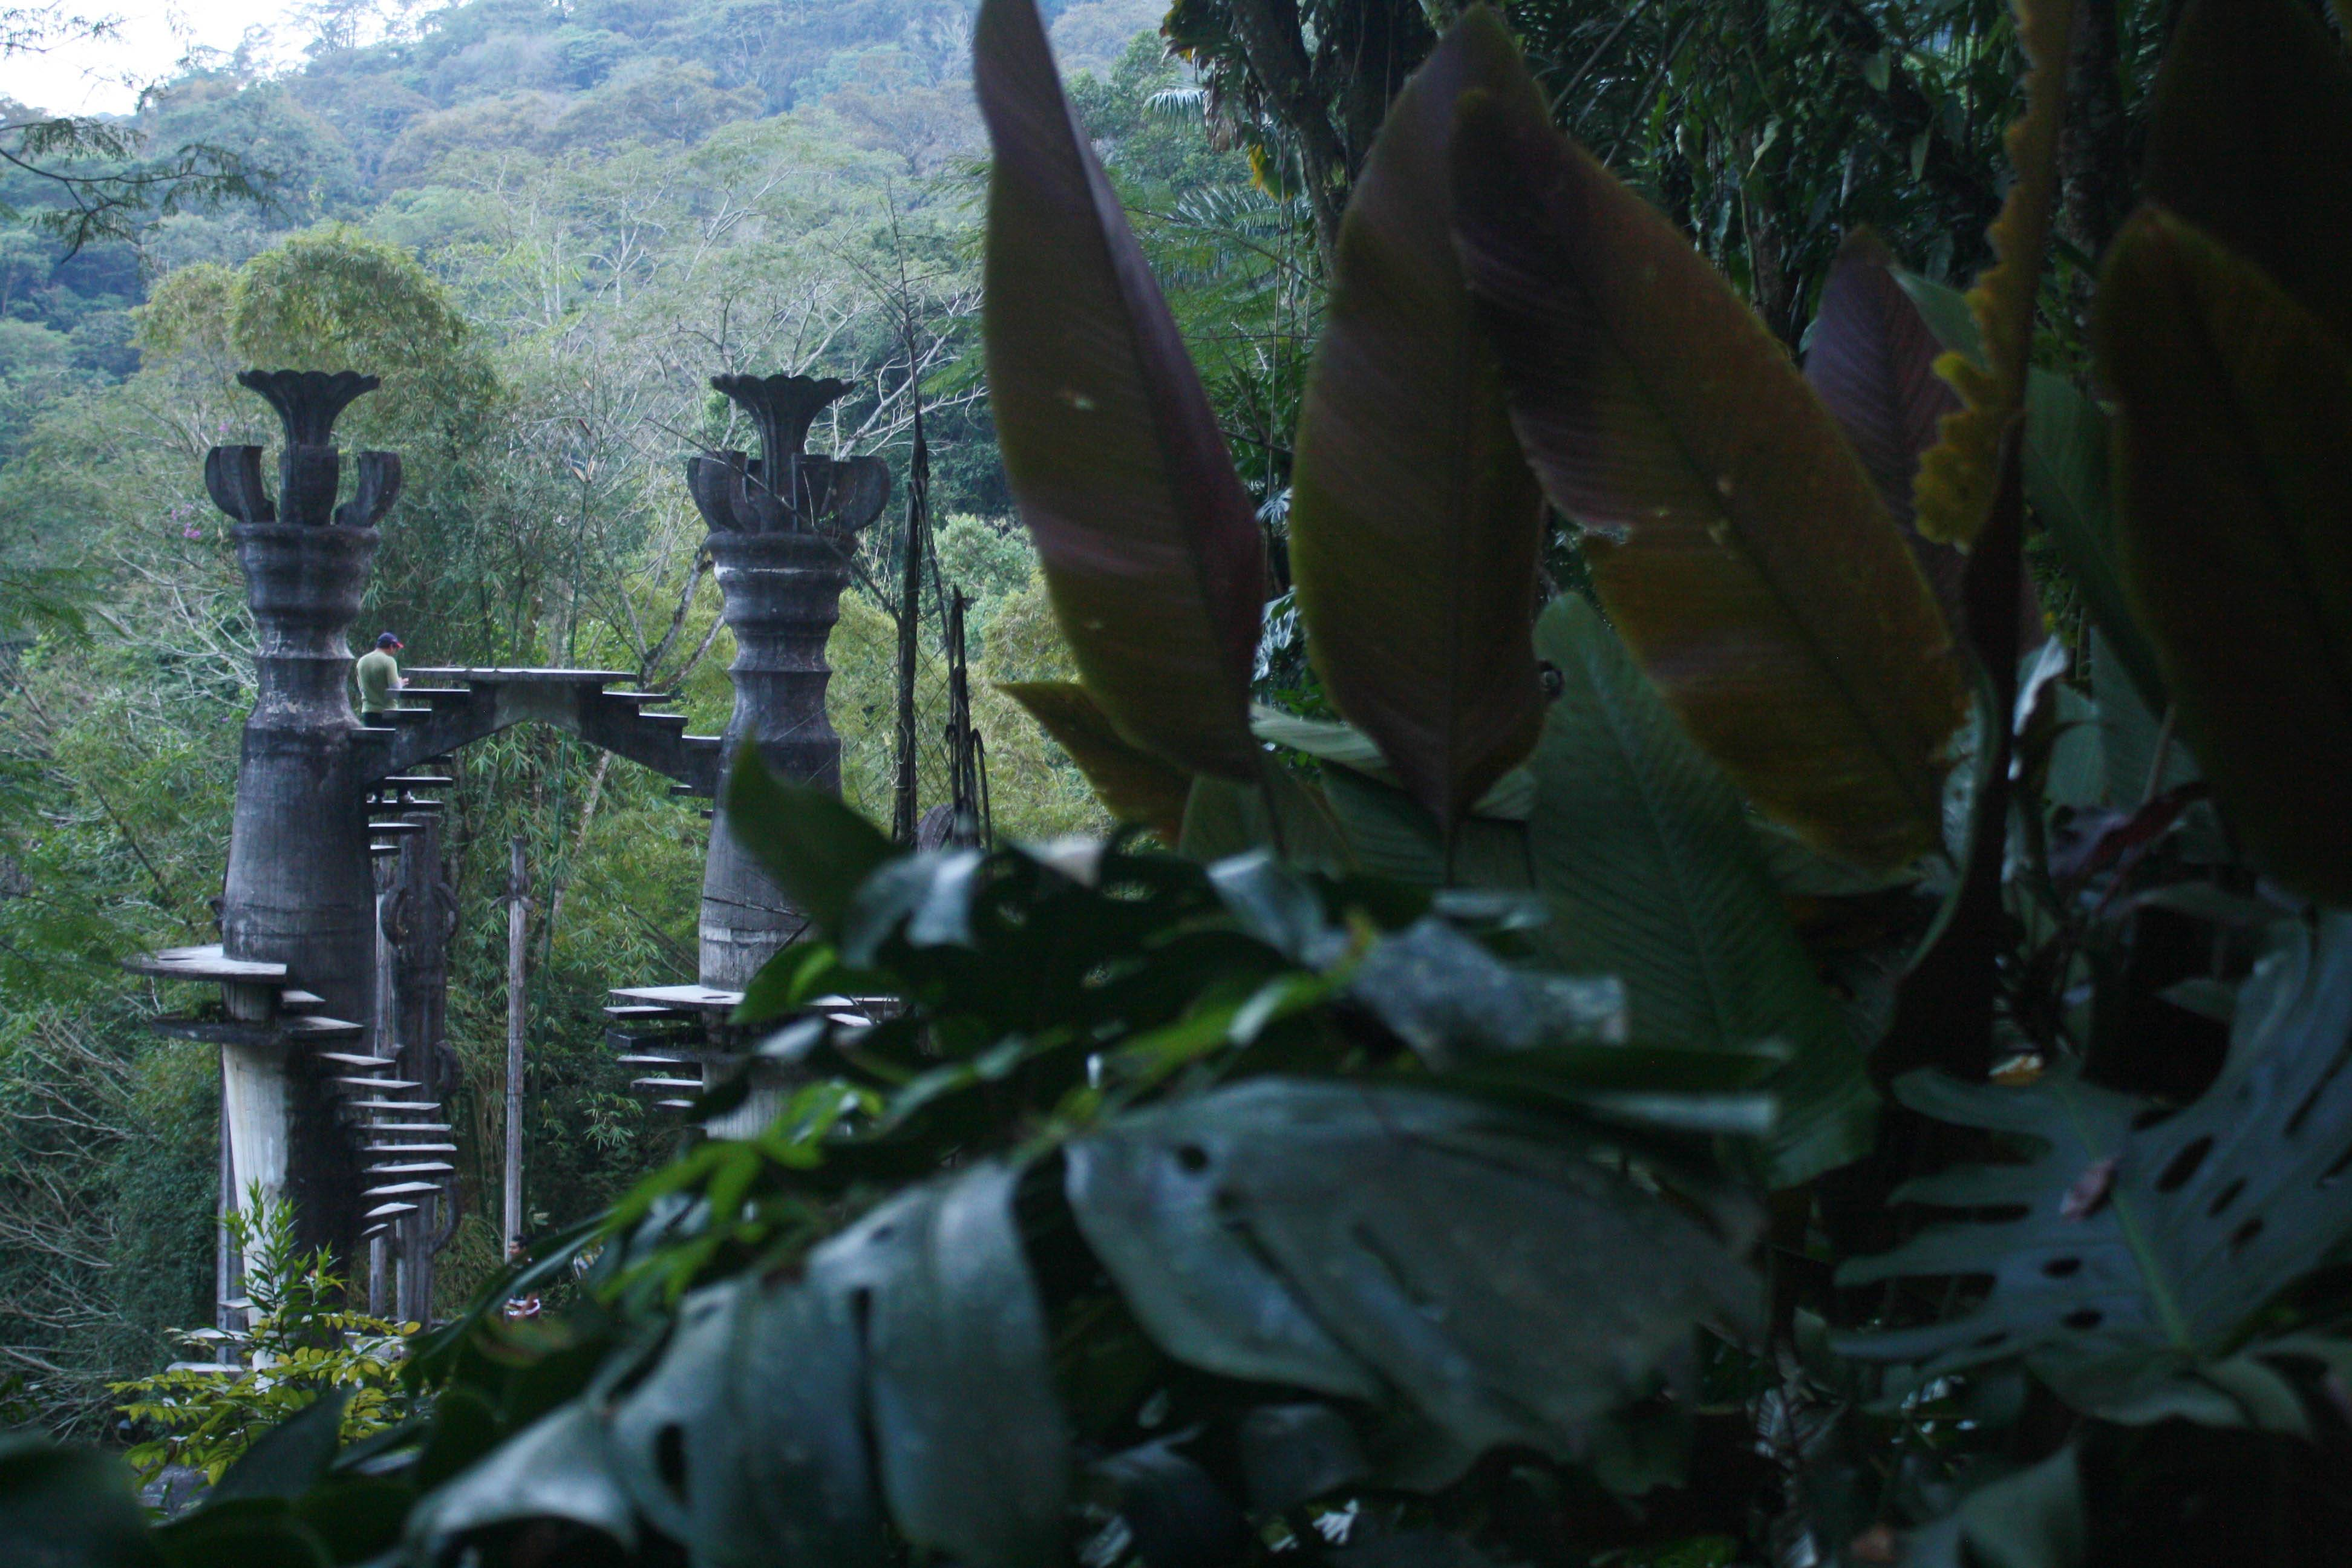 Two spiral staircases lead nowhere amid an ornate concrete structure in Las Pozas.